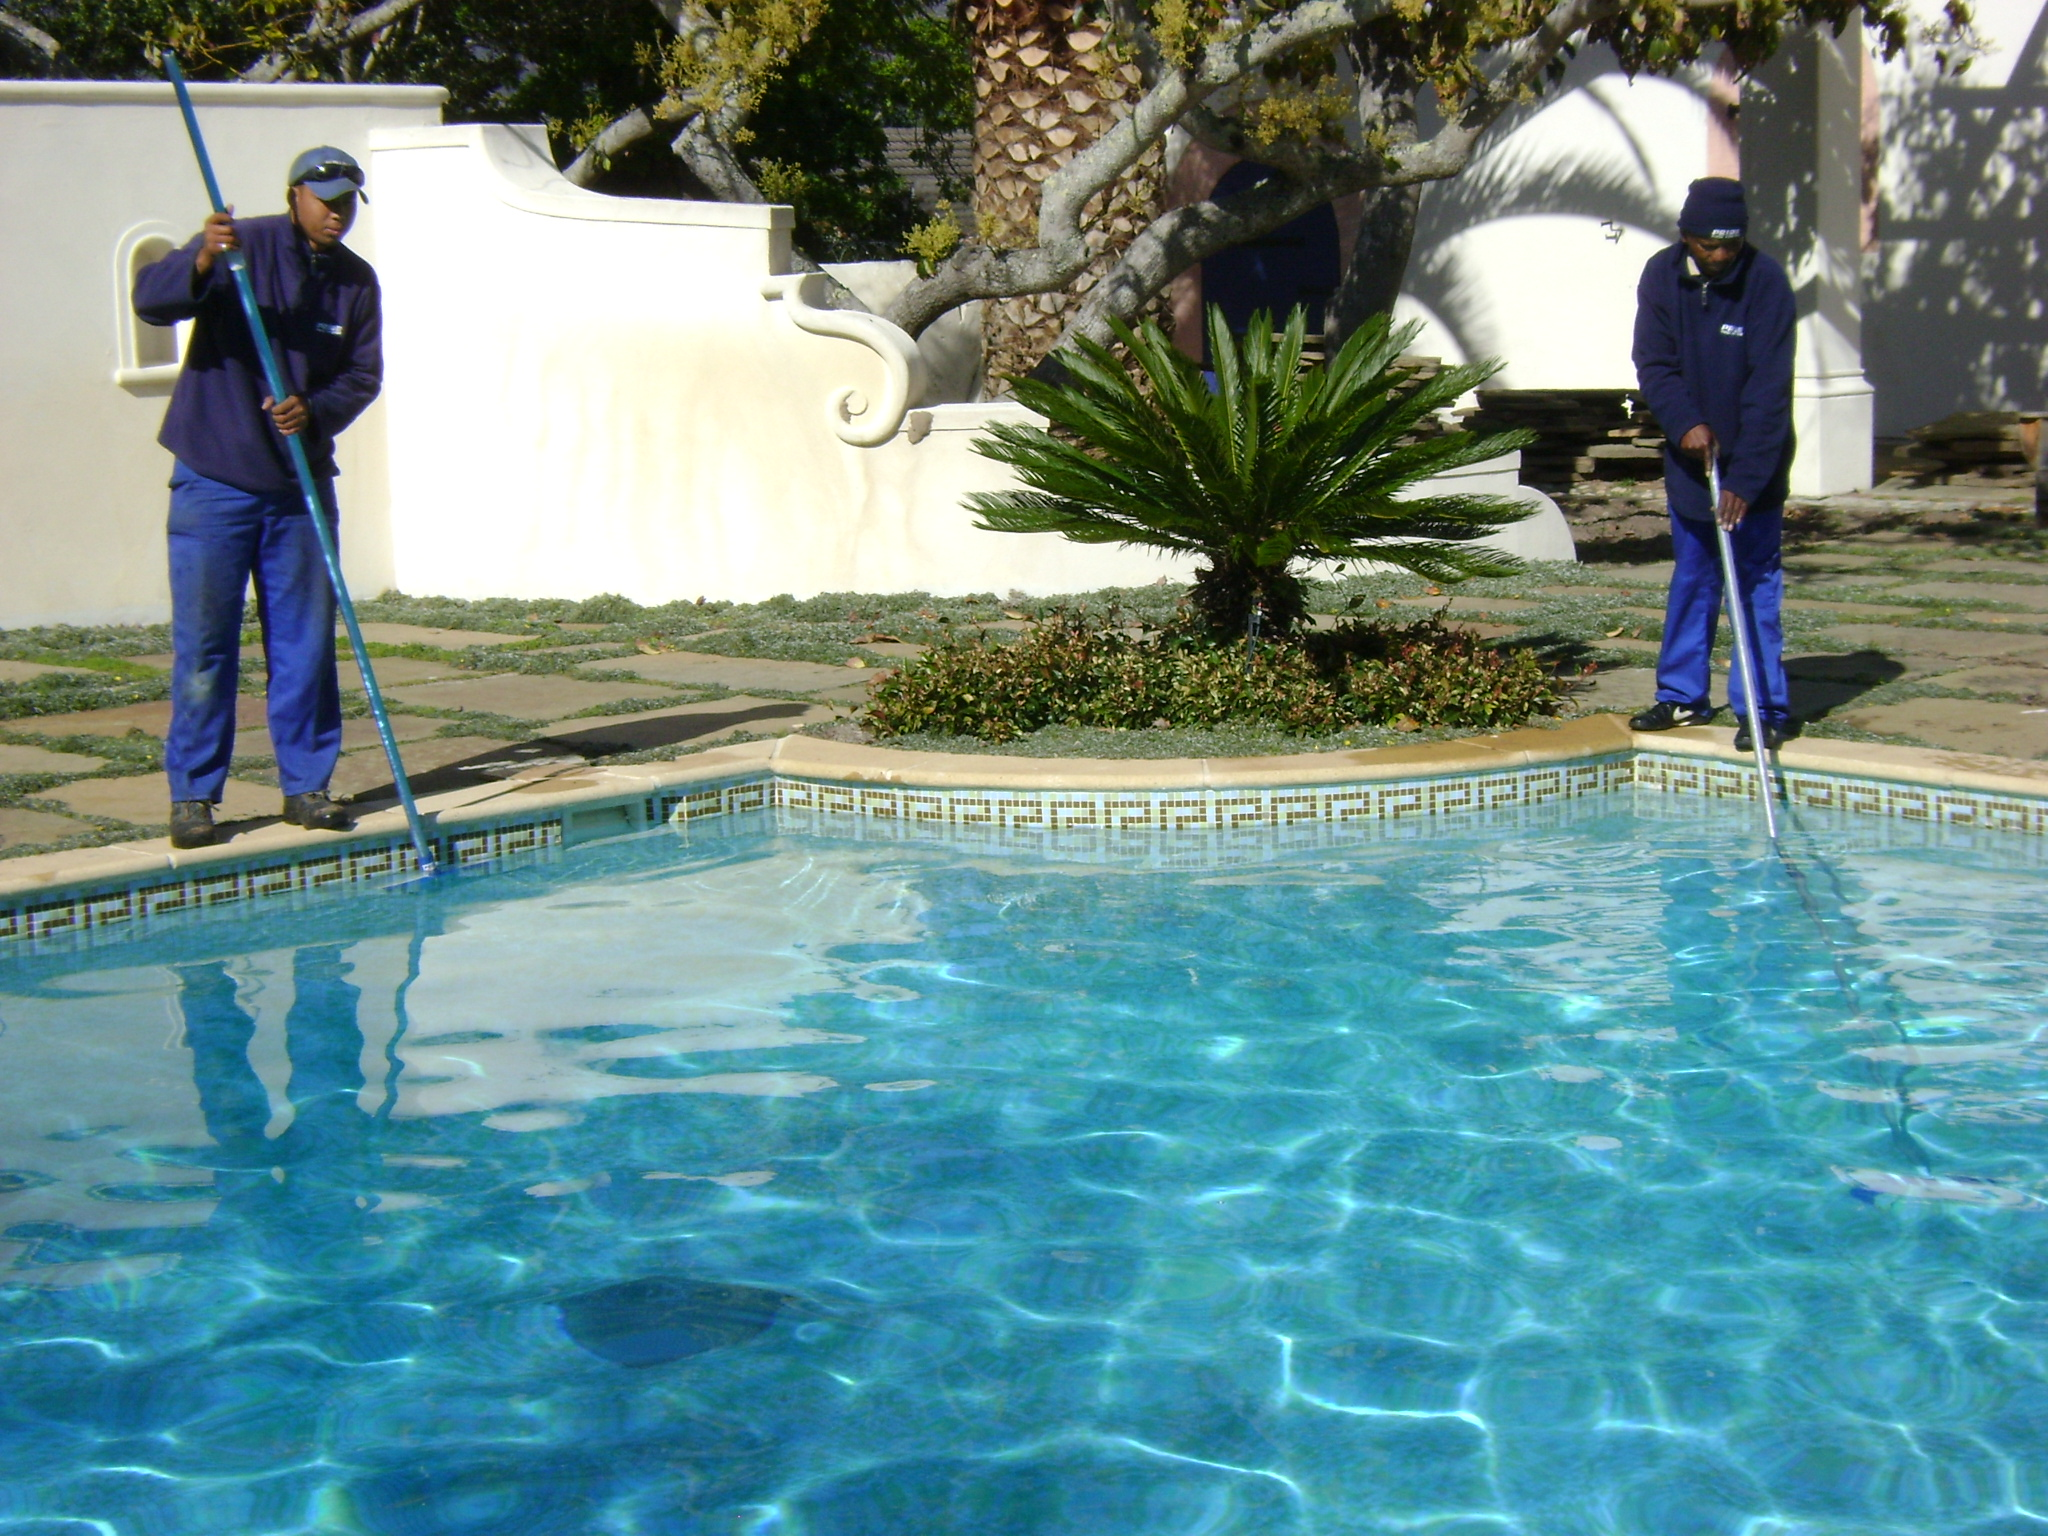 Swimming Pool Maintenance Services For Pool Equipment Filters Chlorinators Pumps Kreepy